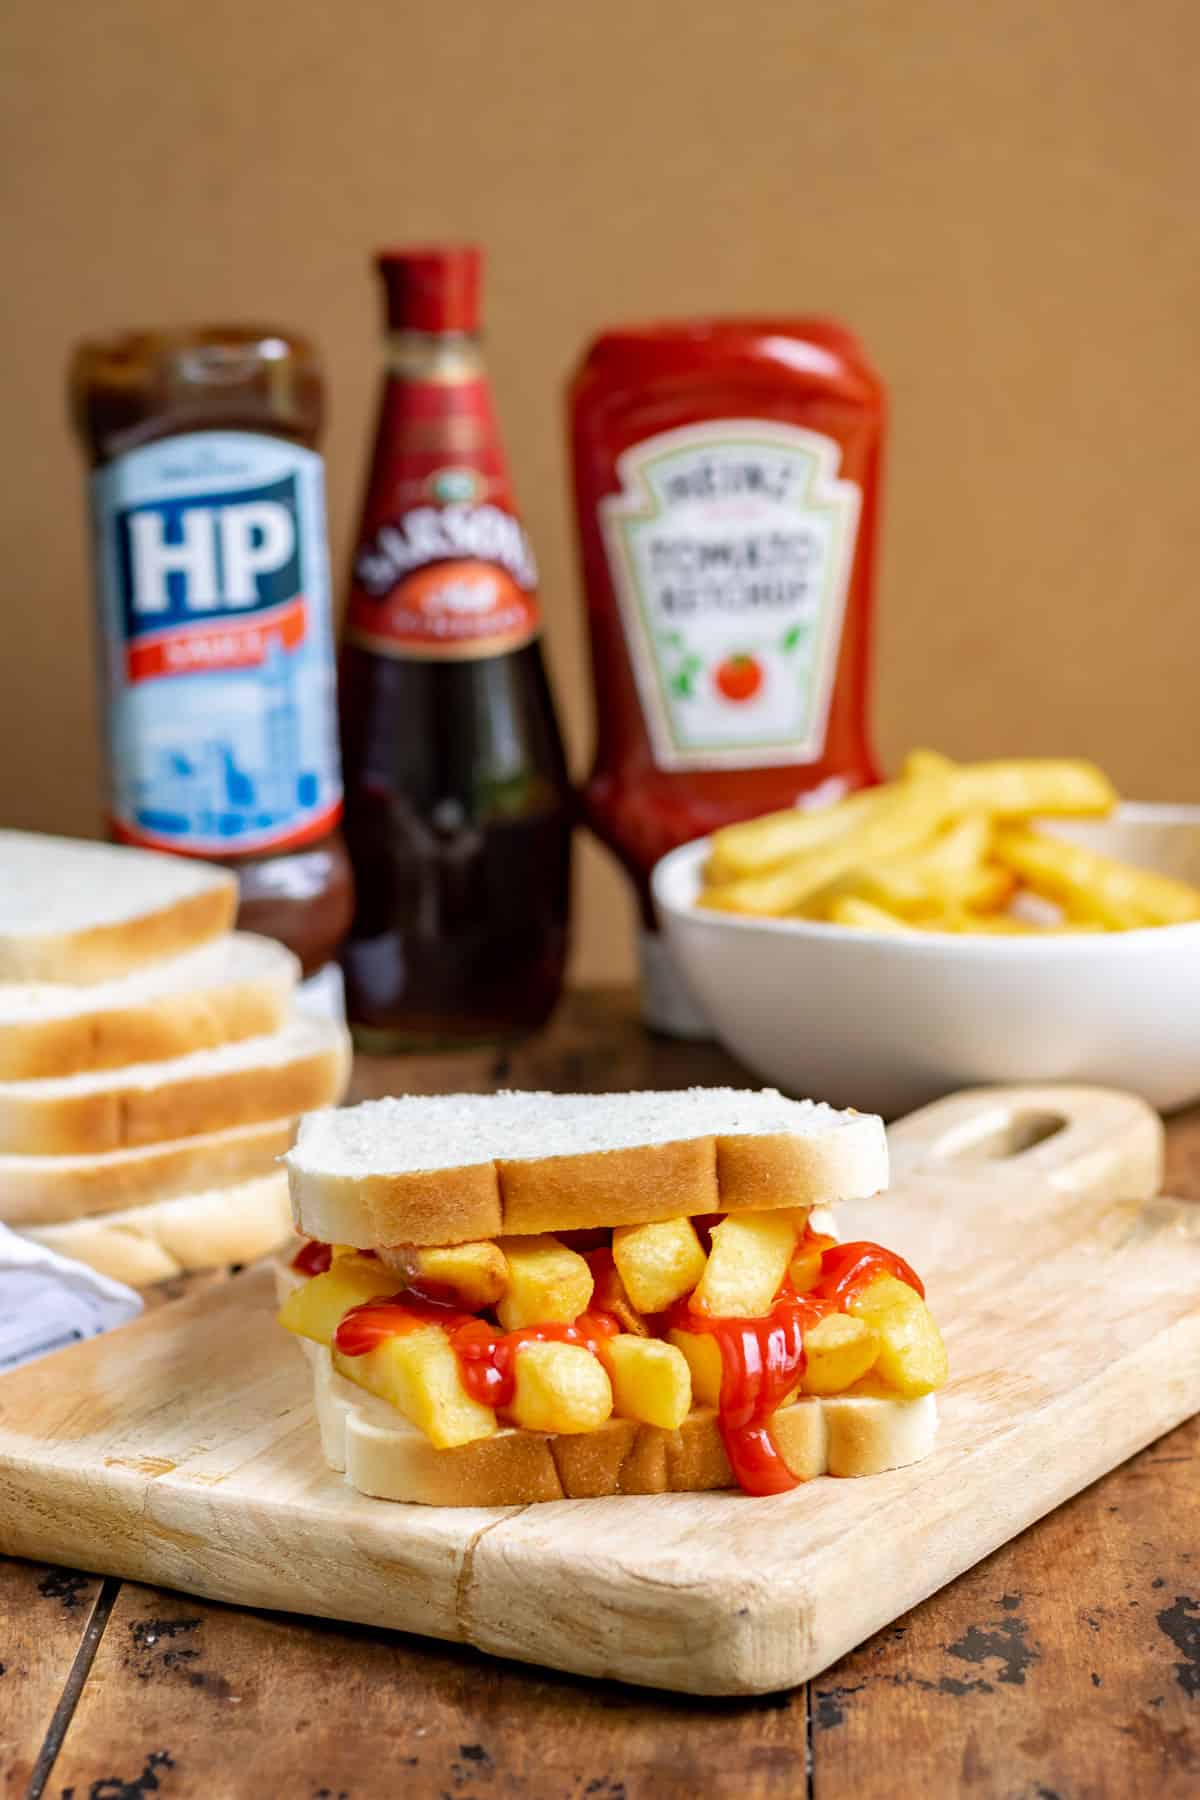 Table with chip butty, bowl of chips, ketchup and HP sauce bottles.